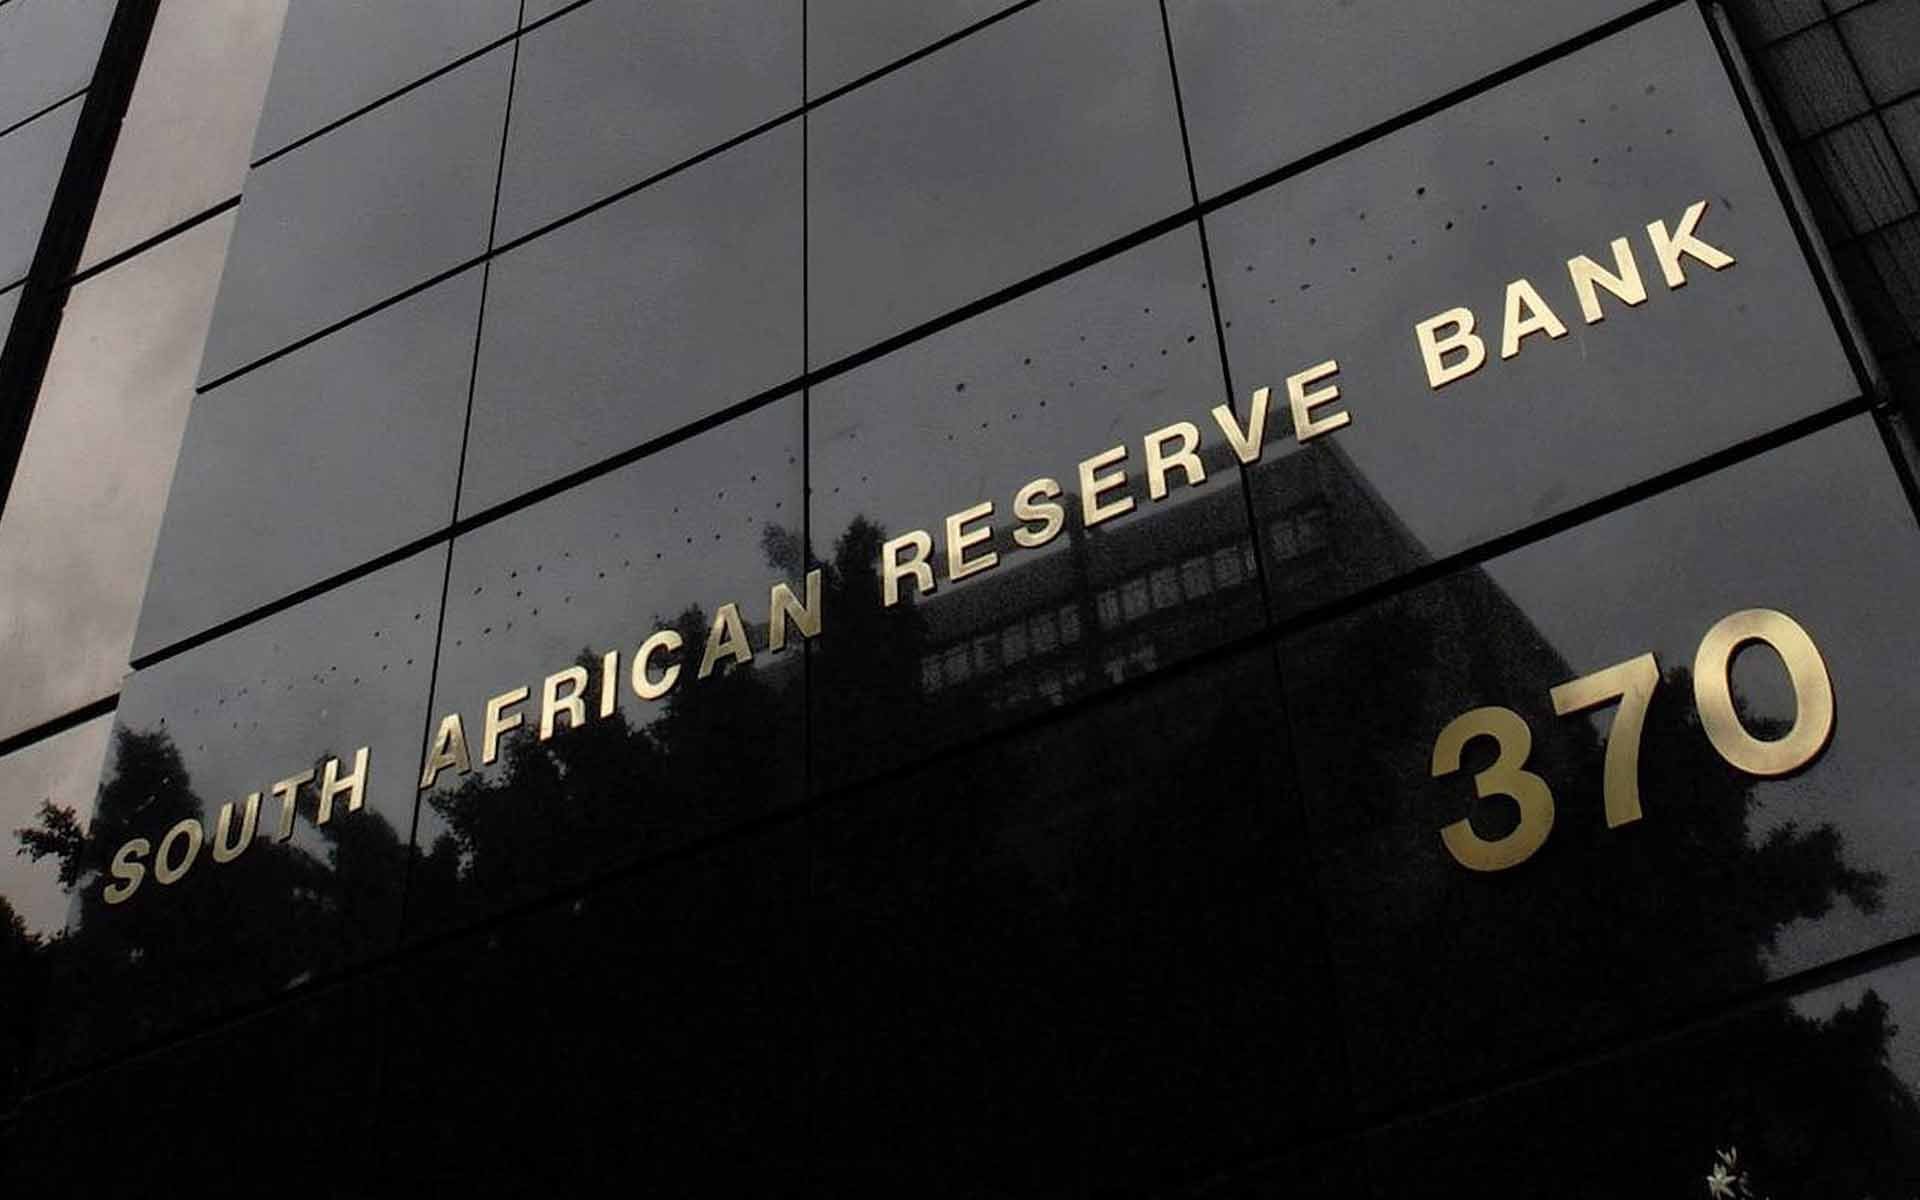 South African Reserve Bank (SARB): Virtual Currencies Are 'Cyber-tokens'